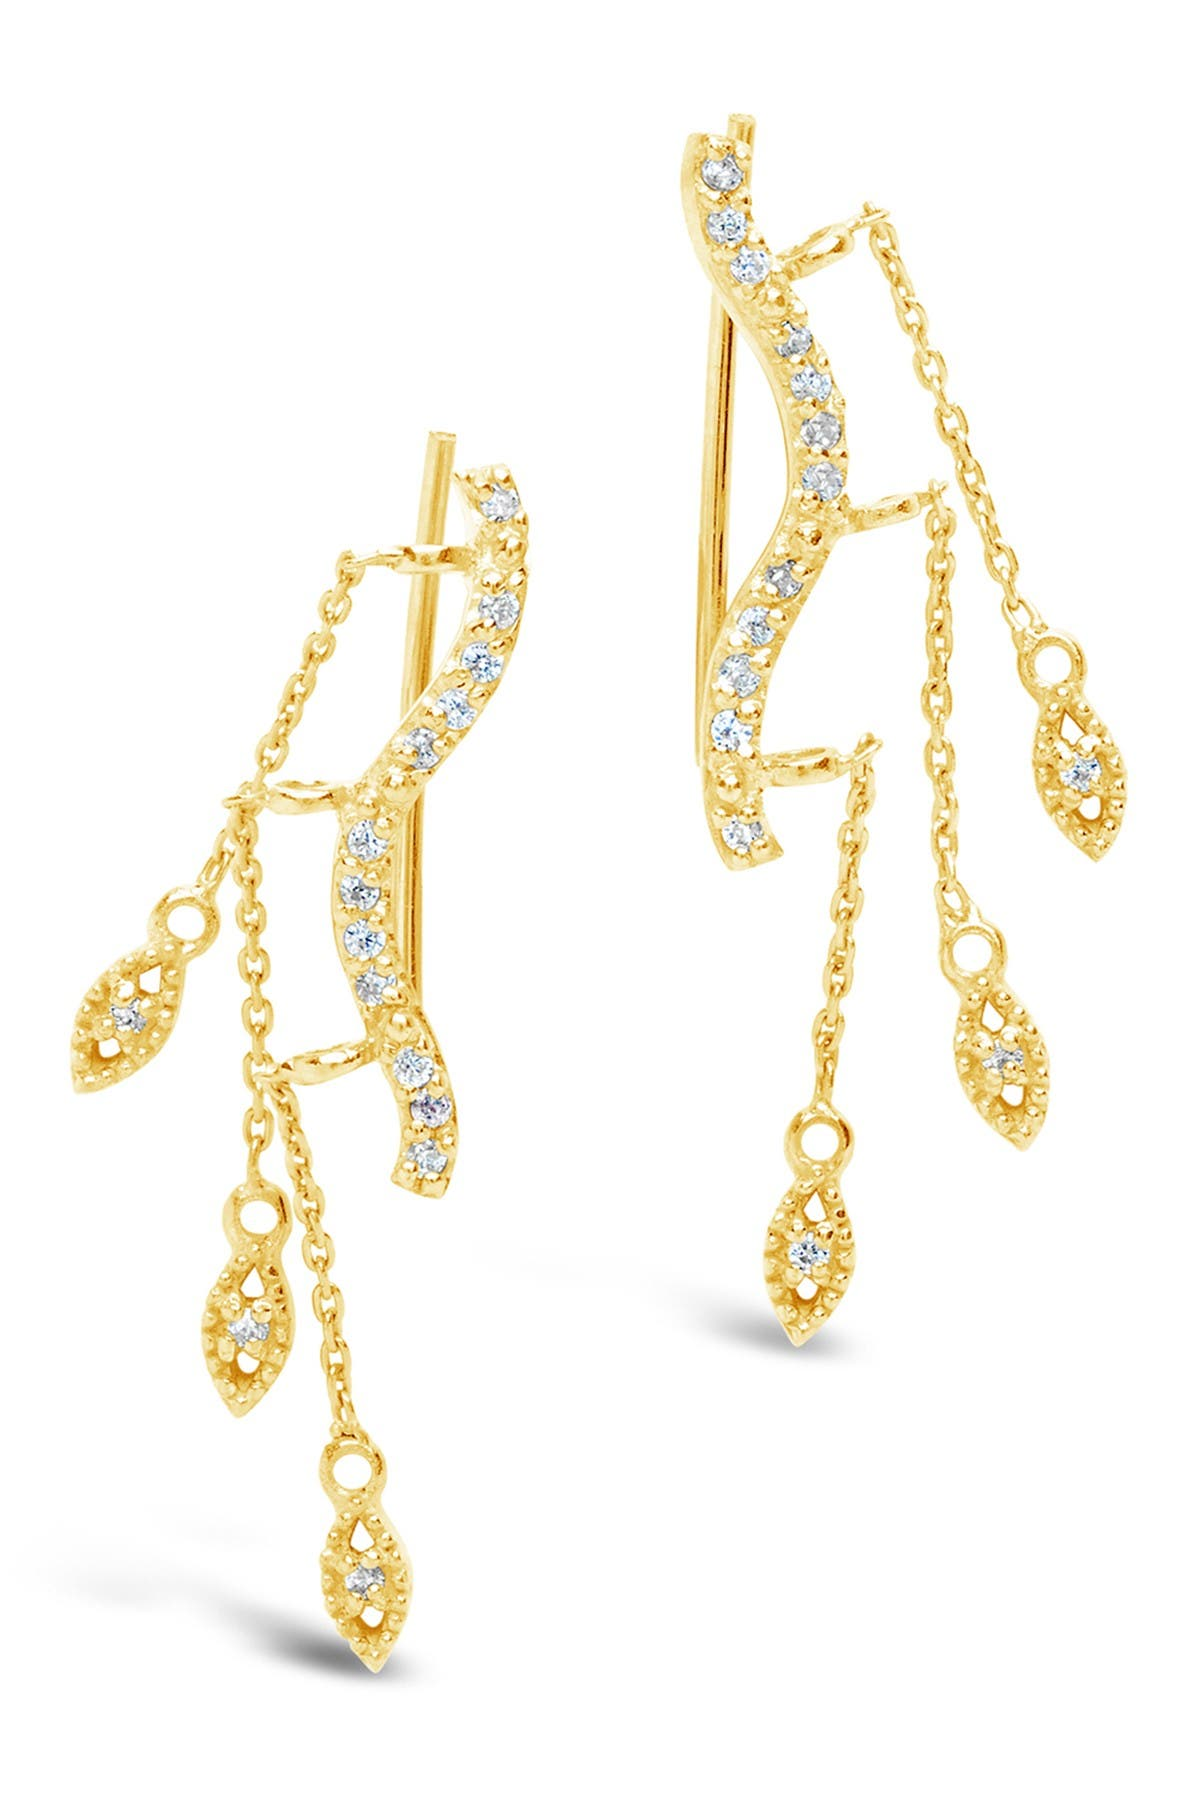 Image of Sterling Forever 14K Gold Plated Sterling Silver CZ Crawler Earrings